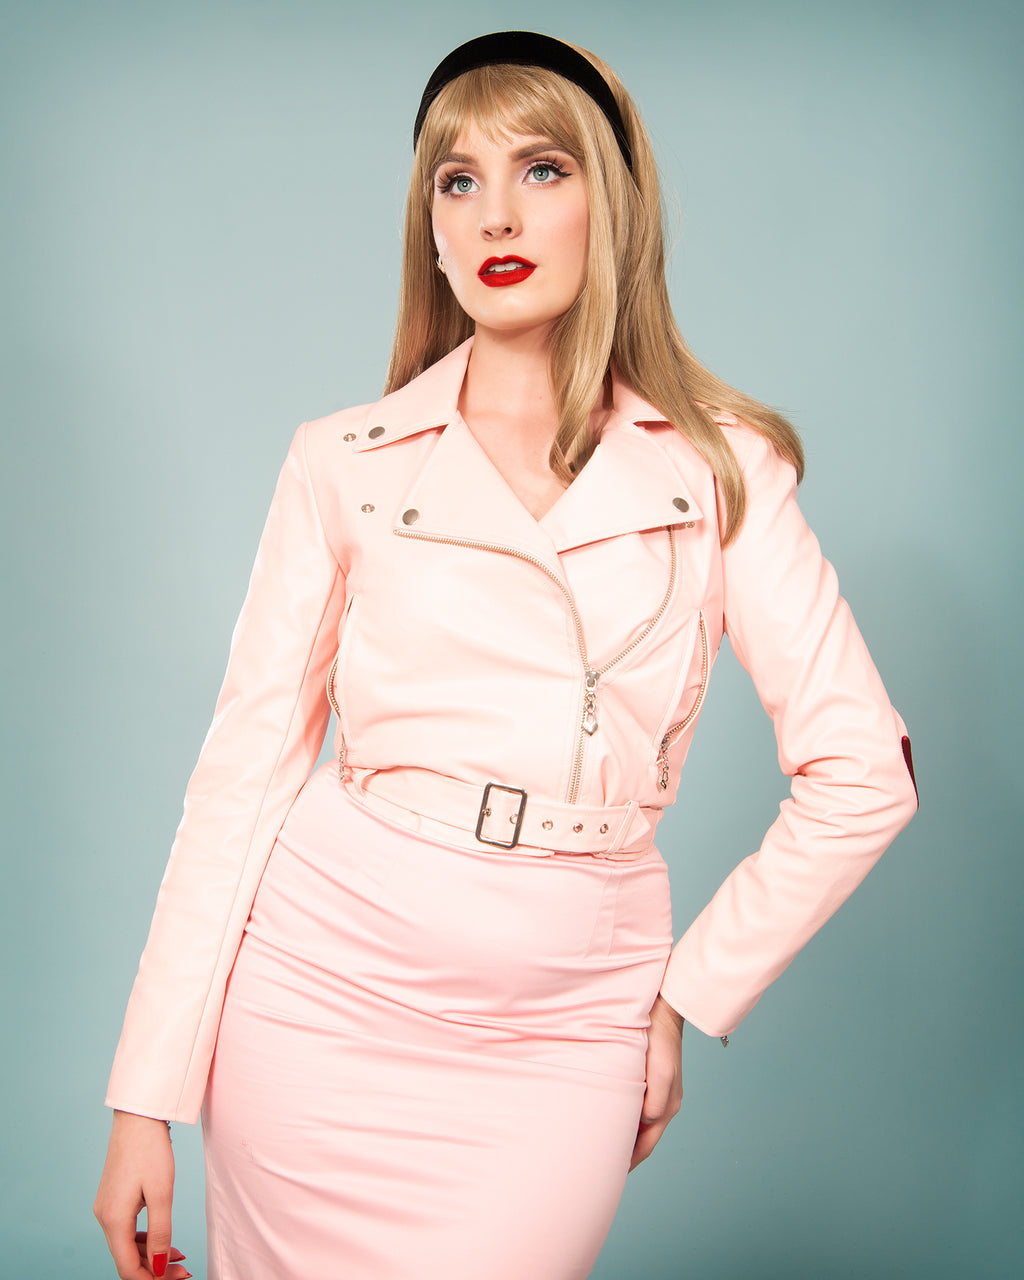 Veronica Biker Jacket in Pink - Natasha Marie Clothing